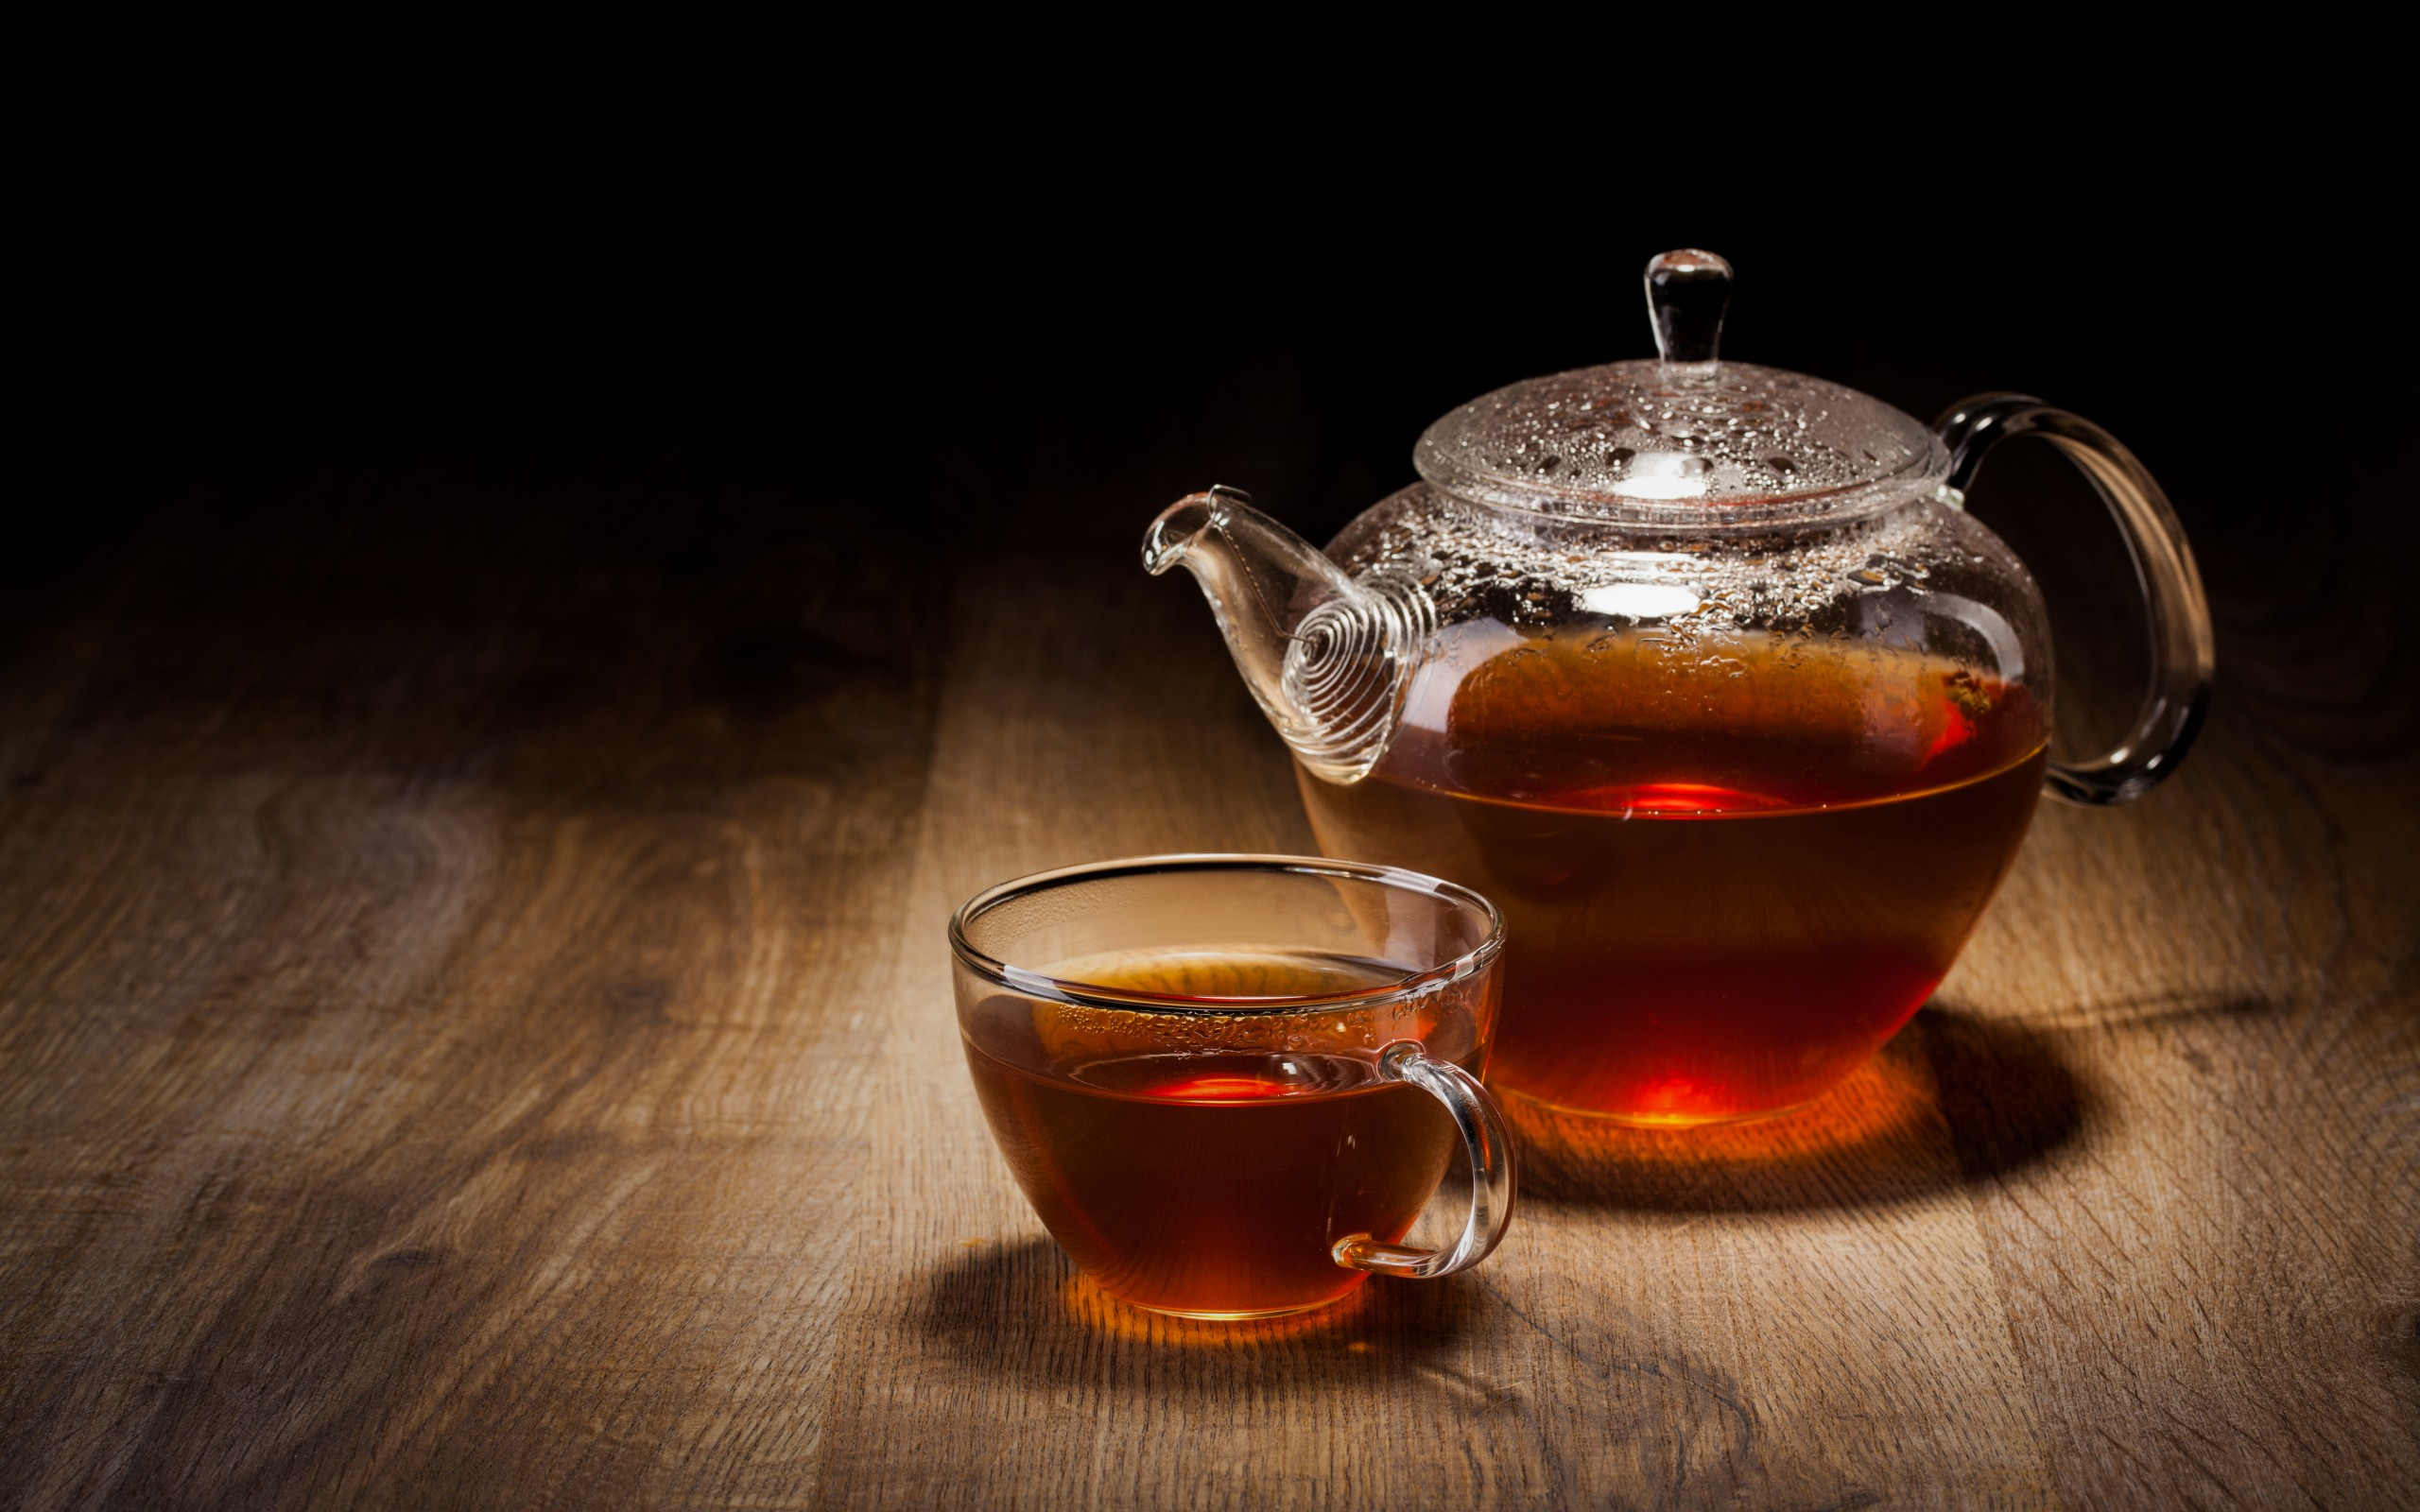 594 Tea Hd Wallpapers Background Images Wallpaper Abyss Page 4